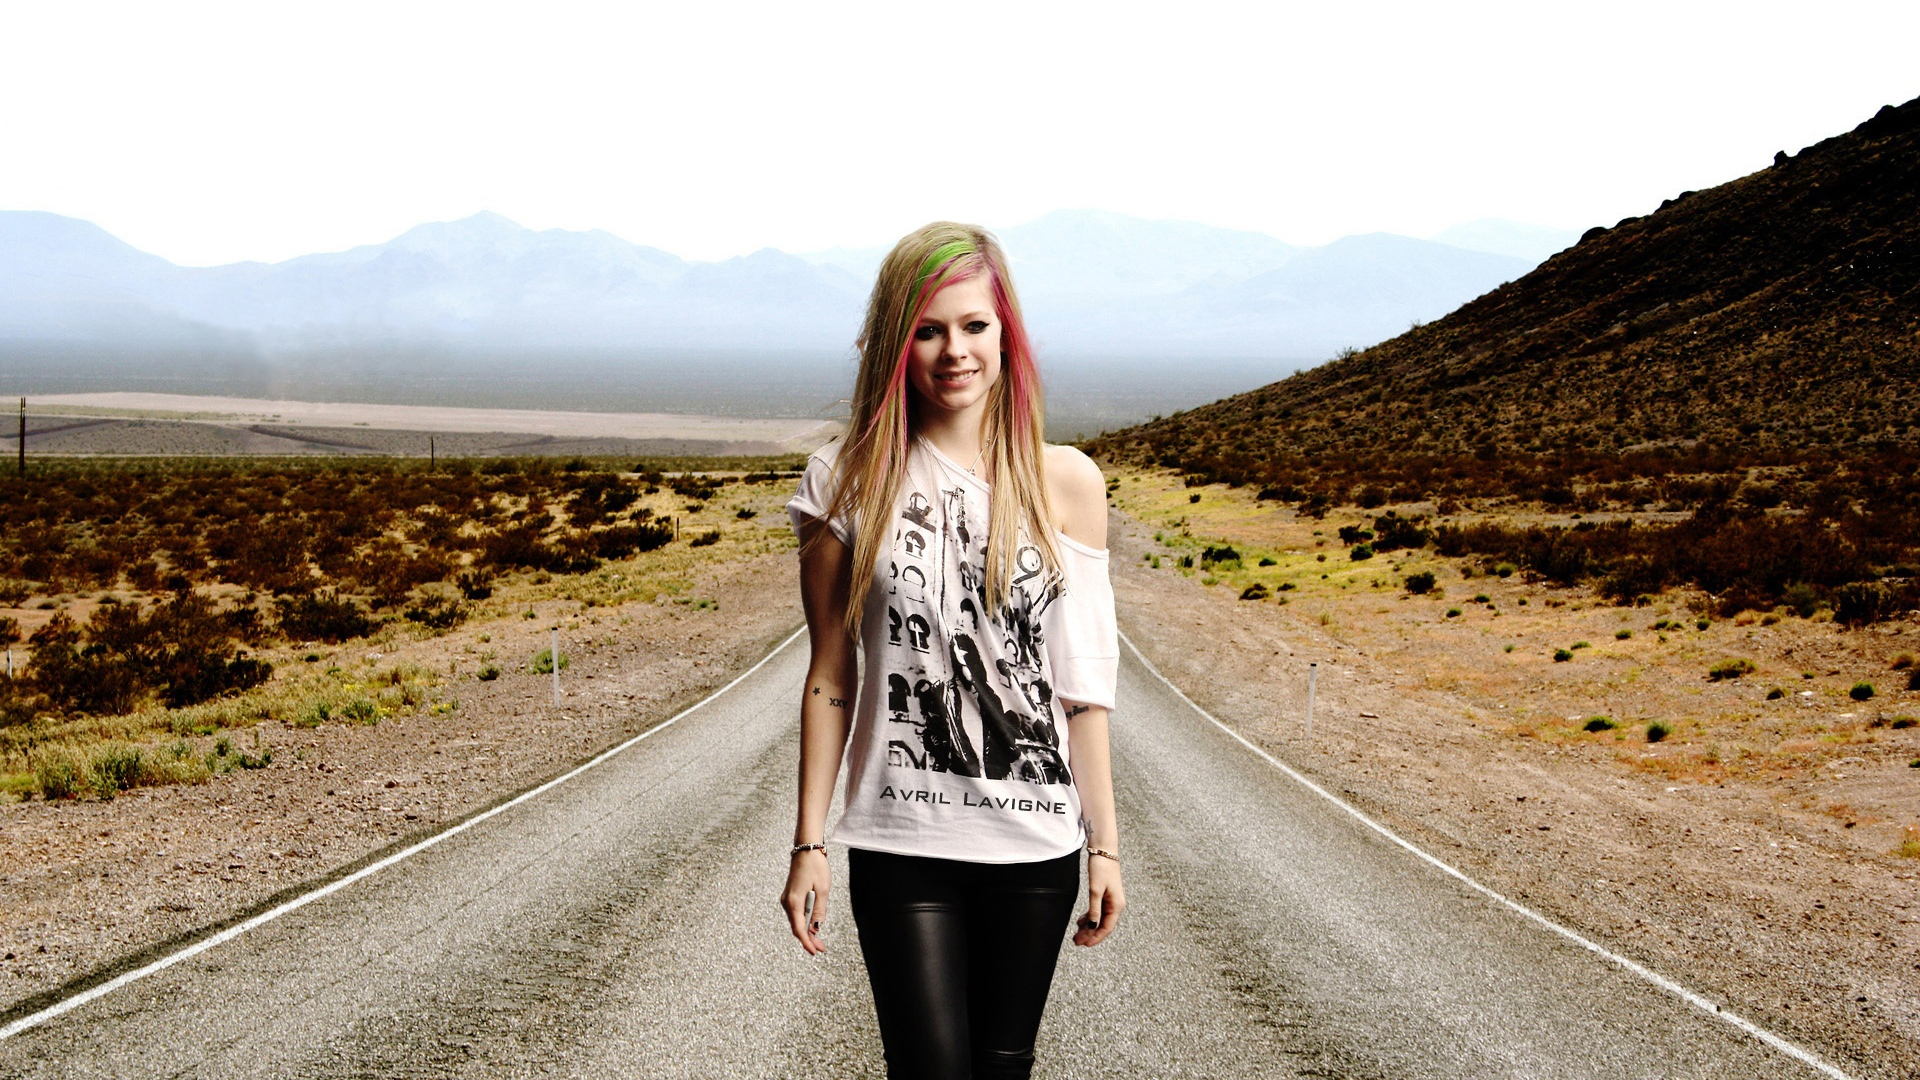 Avril Lavigne Walking Hd Wallpaper Wallpaperfx